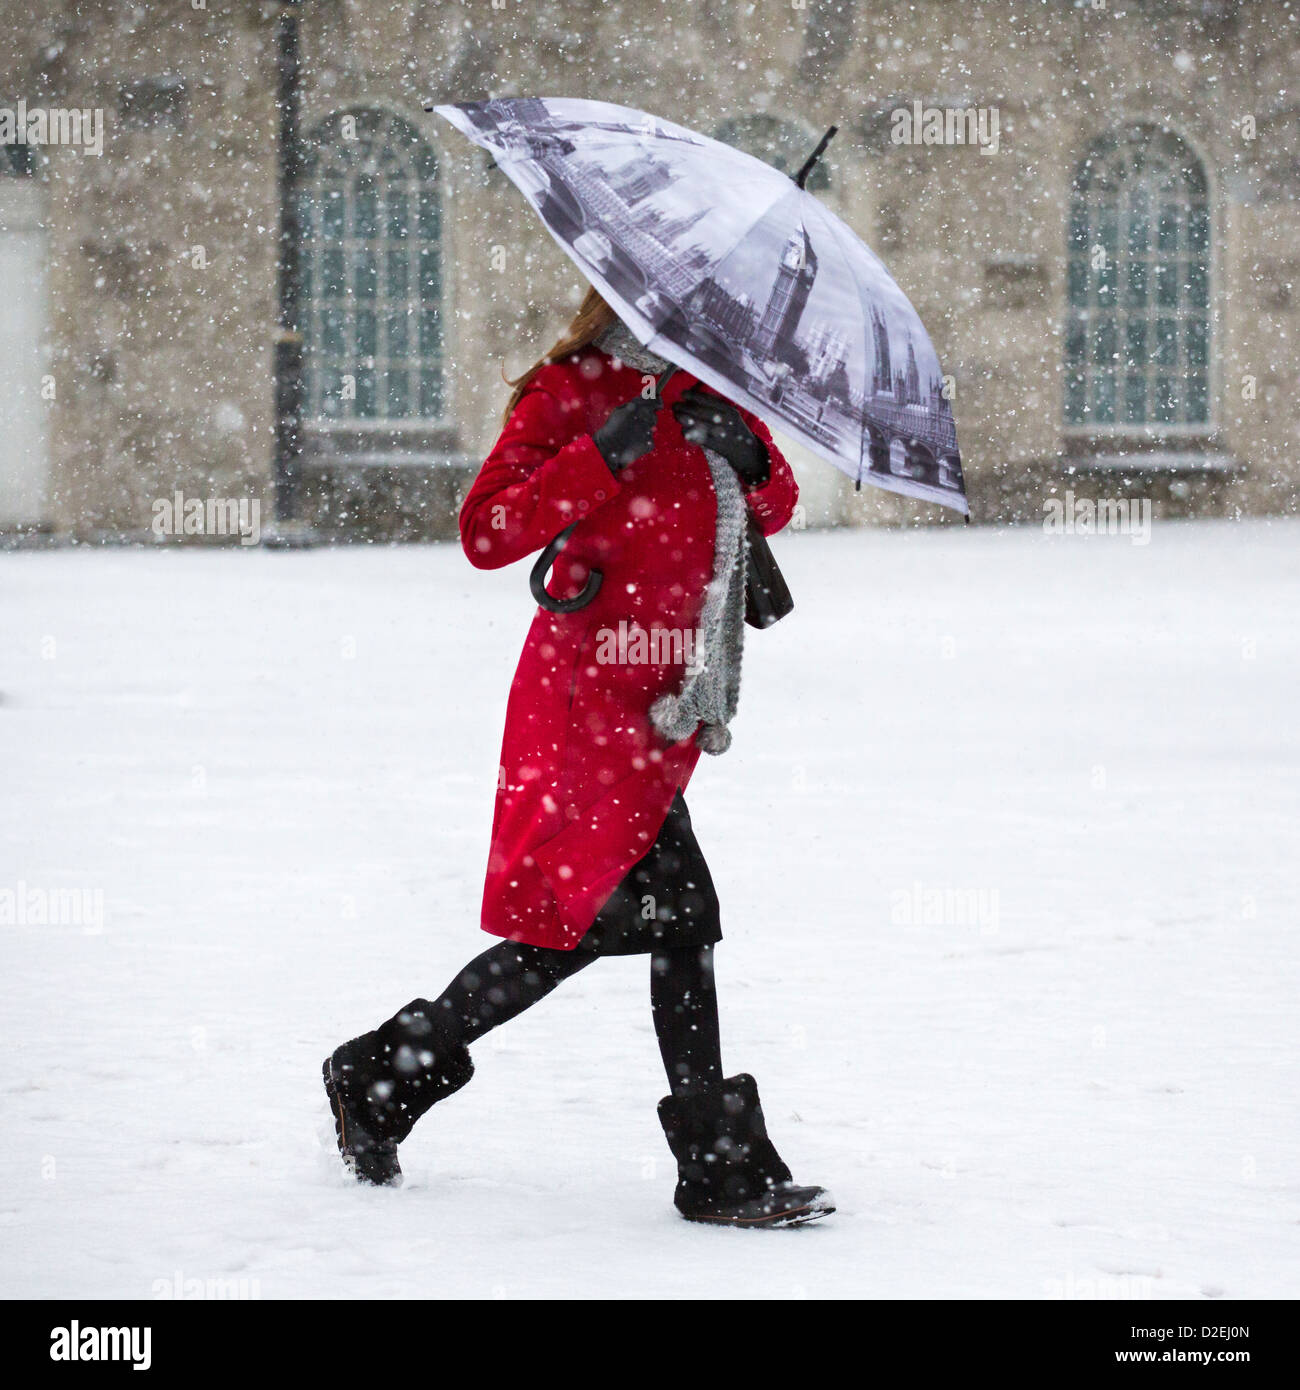 A woman walking through snow in Victoria Square, Birmingham, UK. The umbrella depicts the Houses of Parliament in - Stock Image